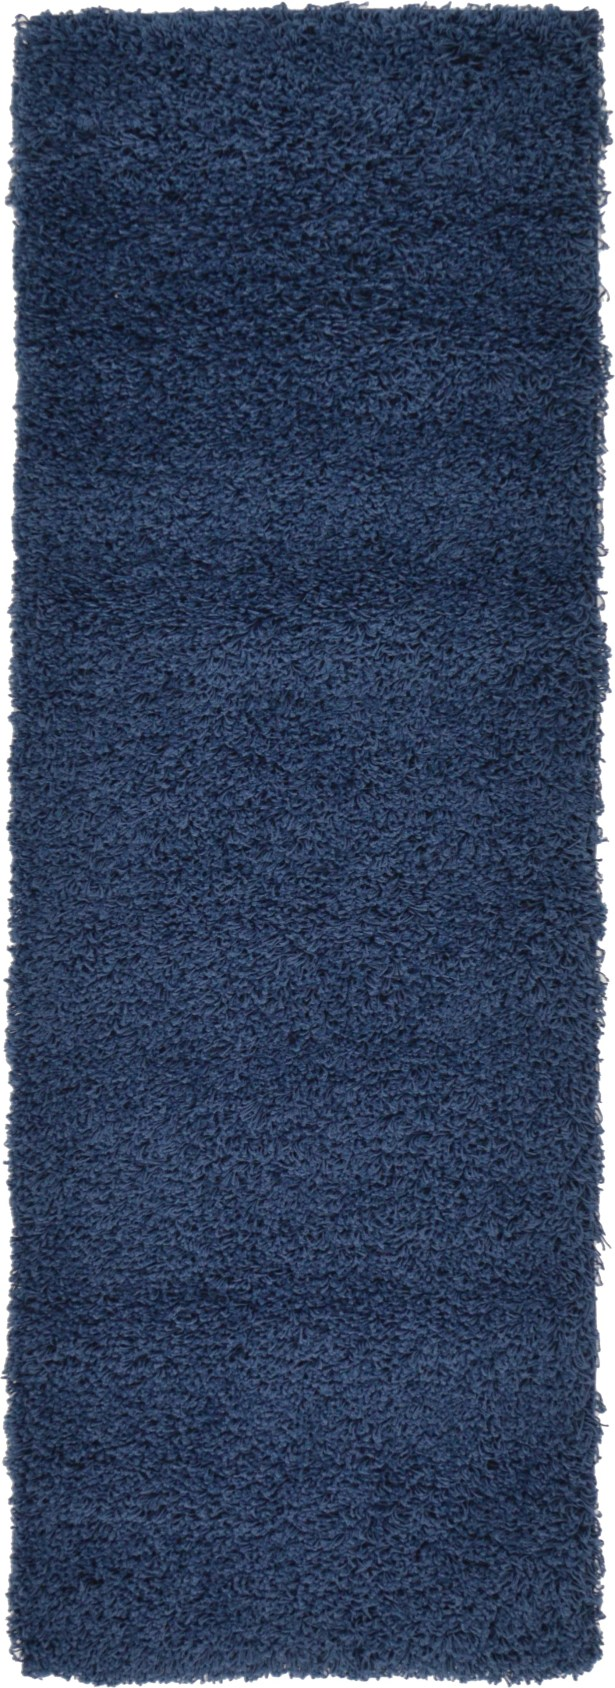 Falmouth Sapphire Area Rug Rug Size: Runner 2'6